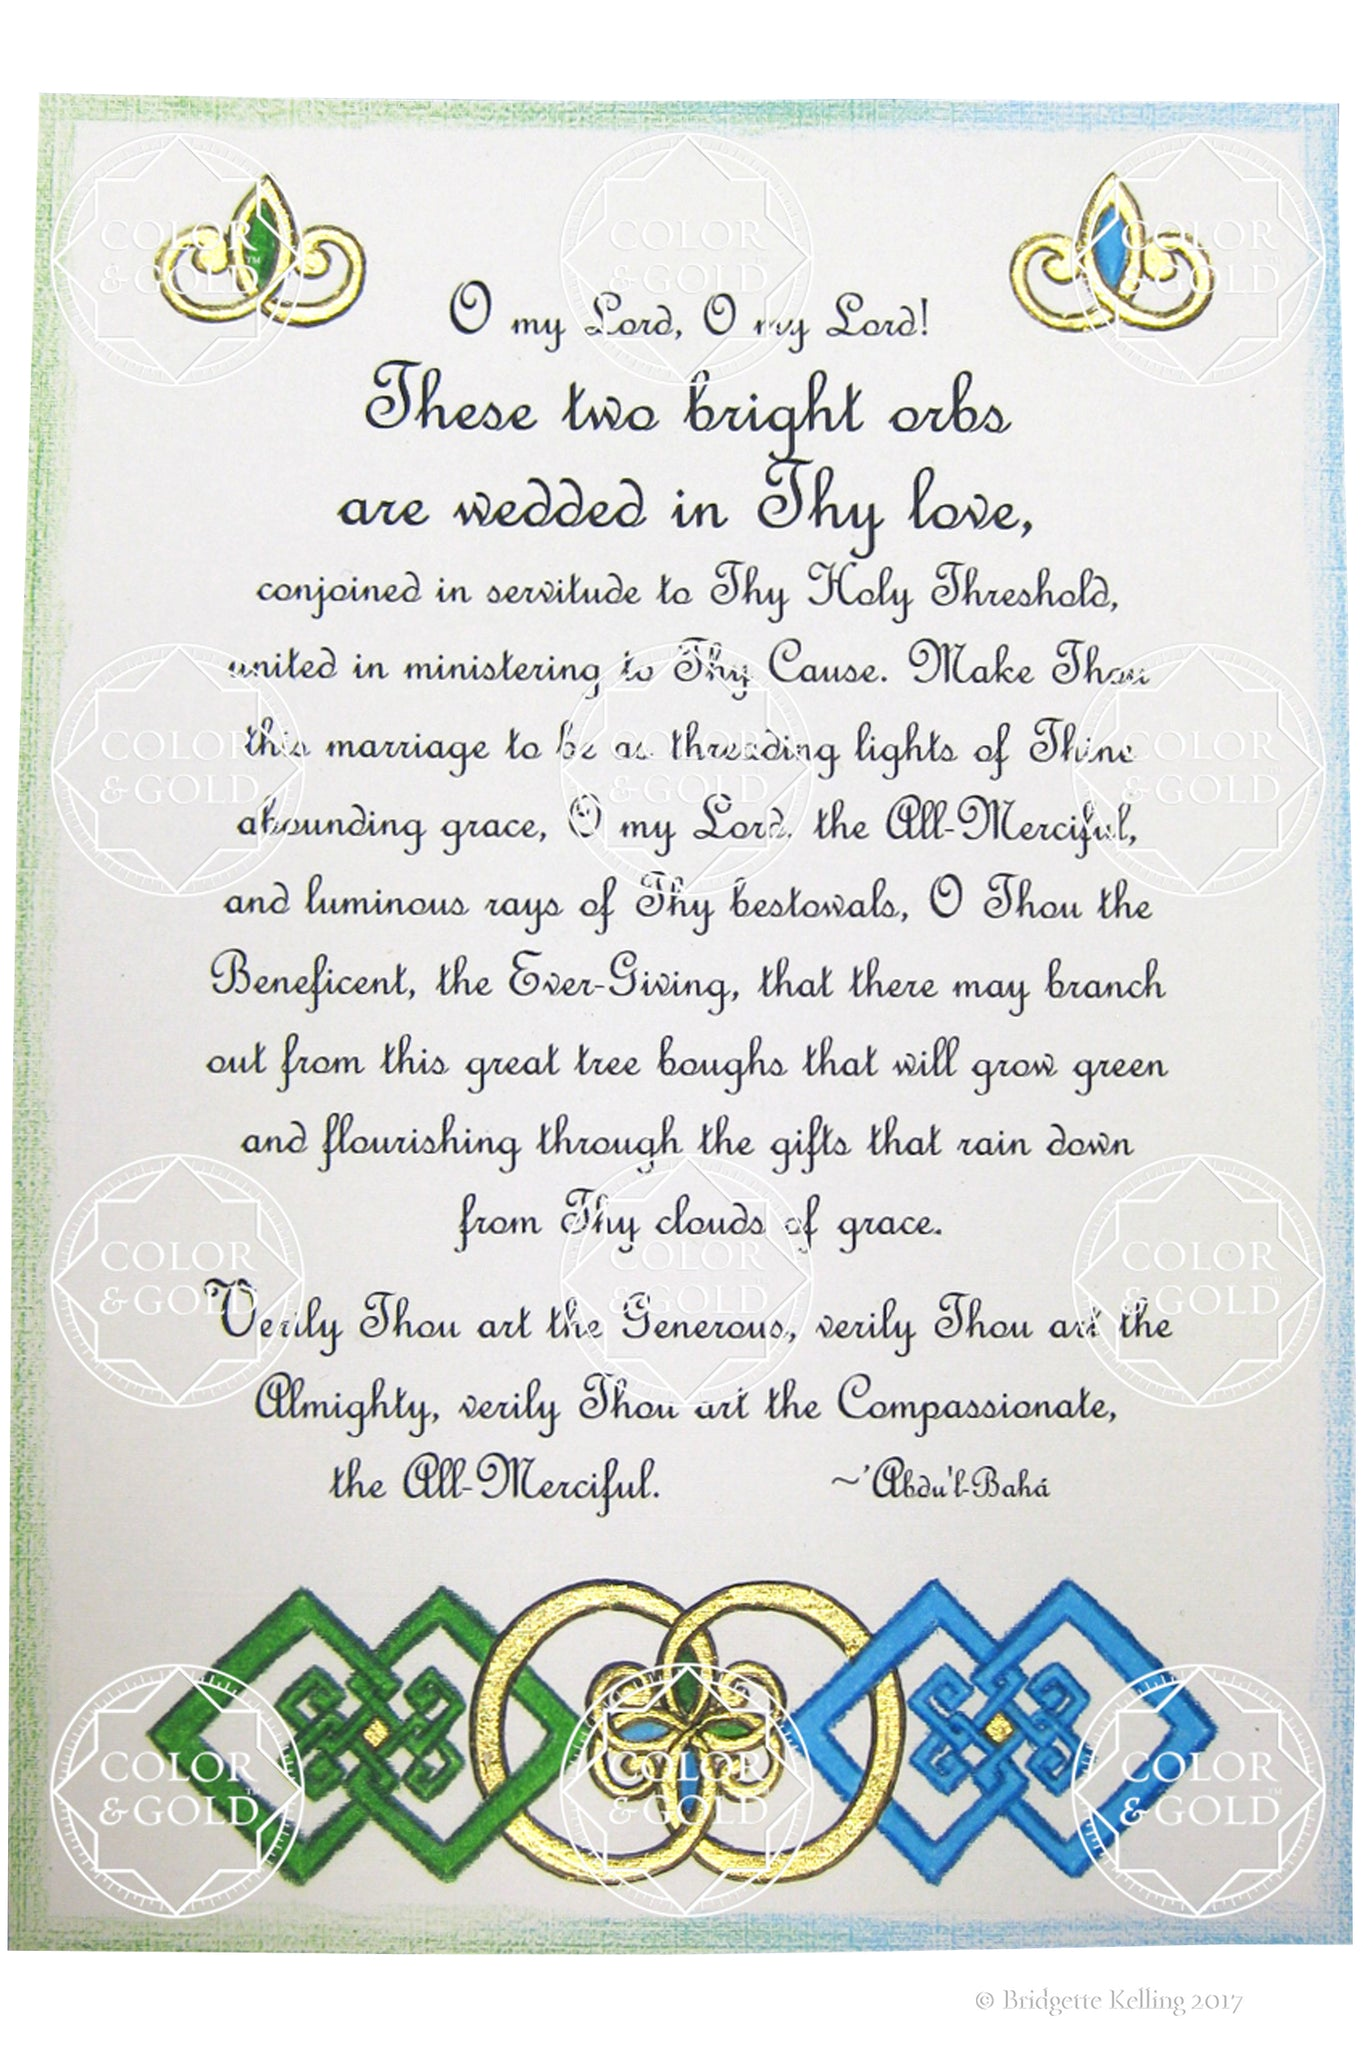 Custom 24 kt gold gilded green & blue colored pencil wedding illumination - Color & Gold LLC © Bridgette Kelling